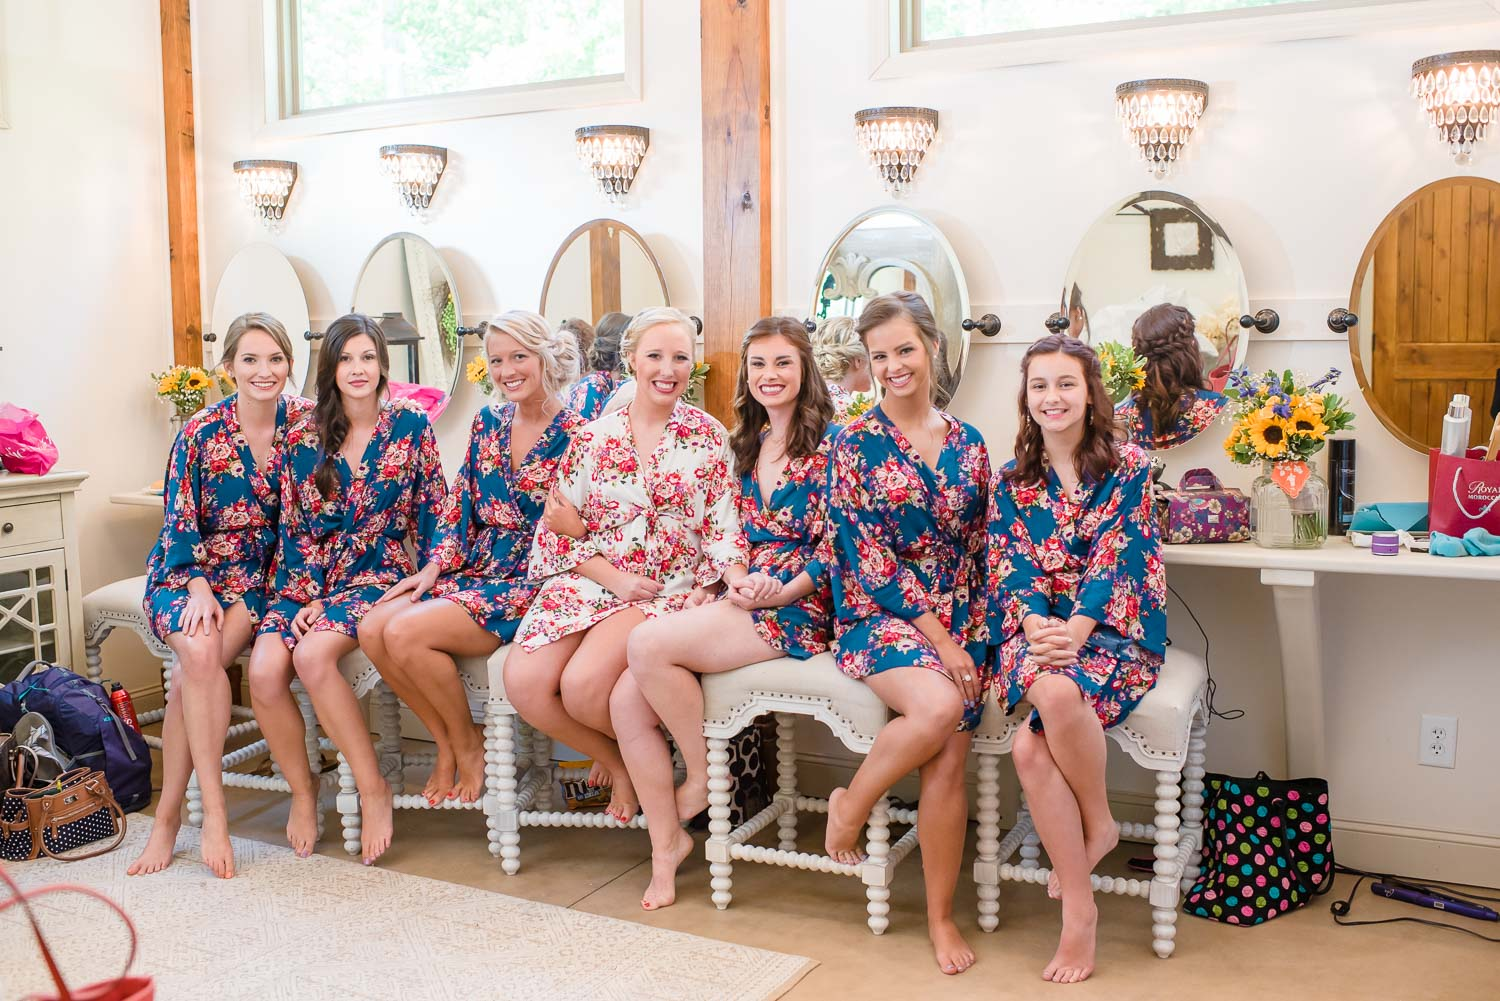 bridesmaids on white stools in bridal suite at Hiwassee River Weddings